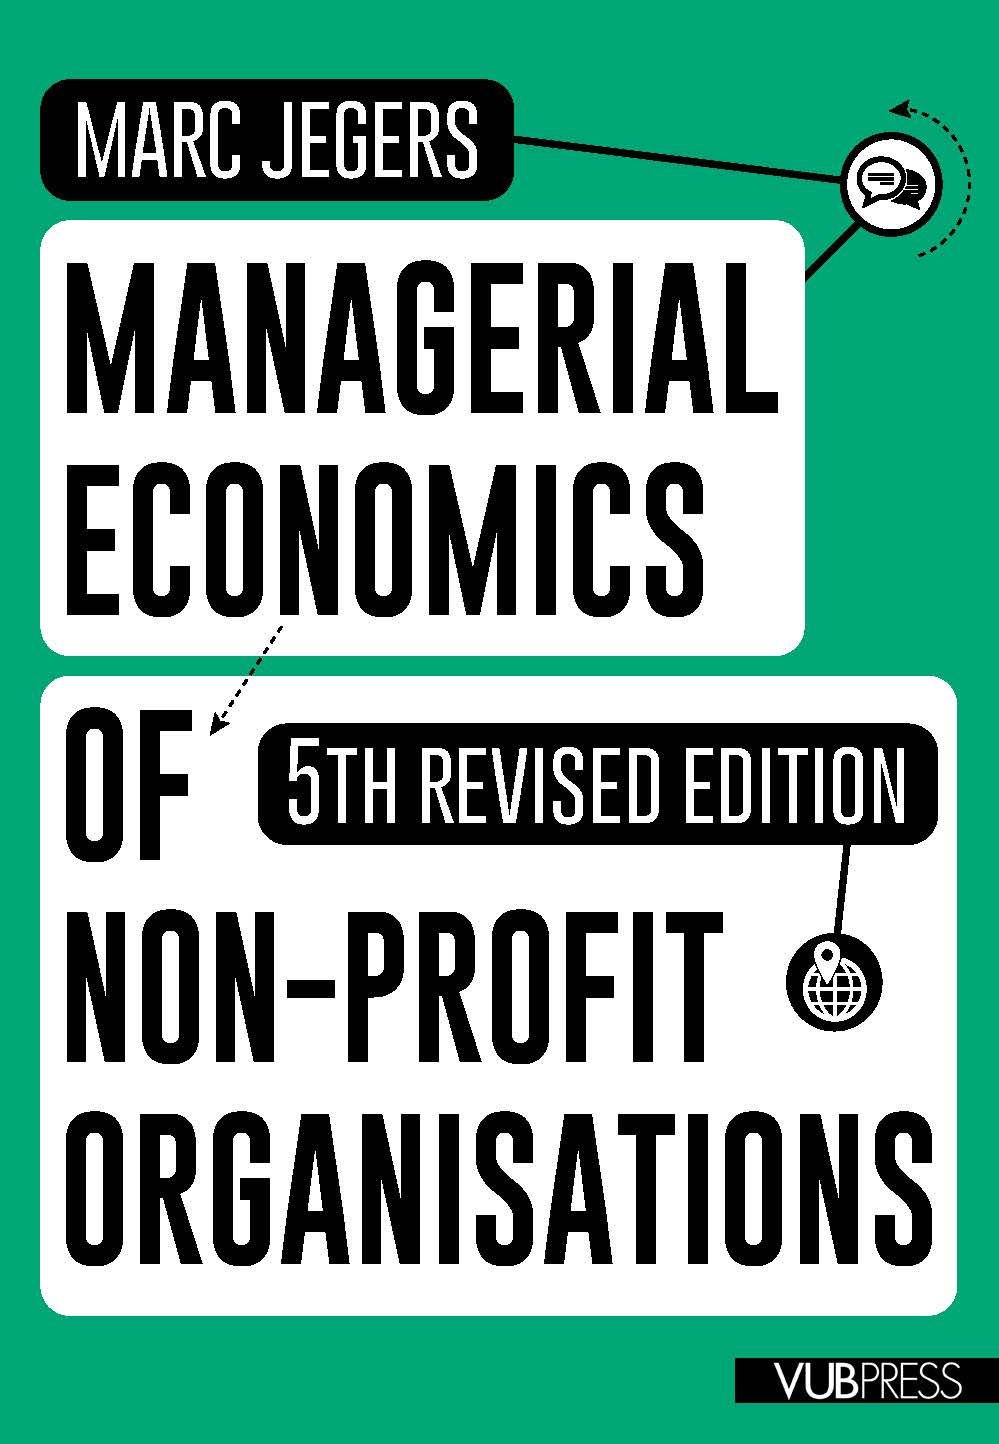 MANAGERIAL ECONOMICS OF NON-PROFIT ORGANISATIONS (5th revised edition)